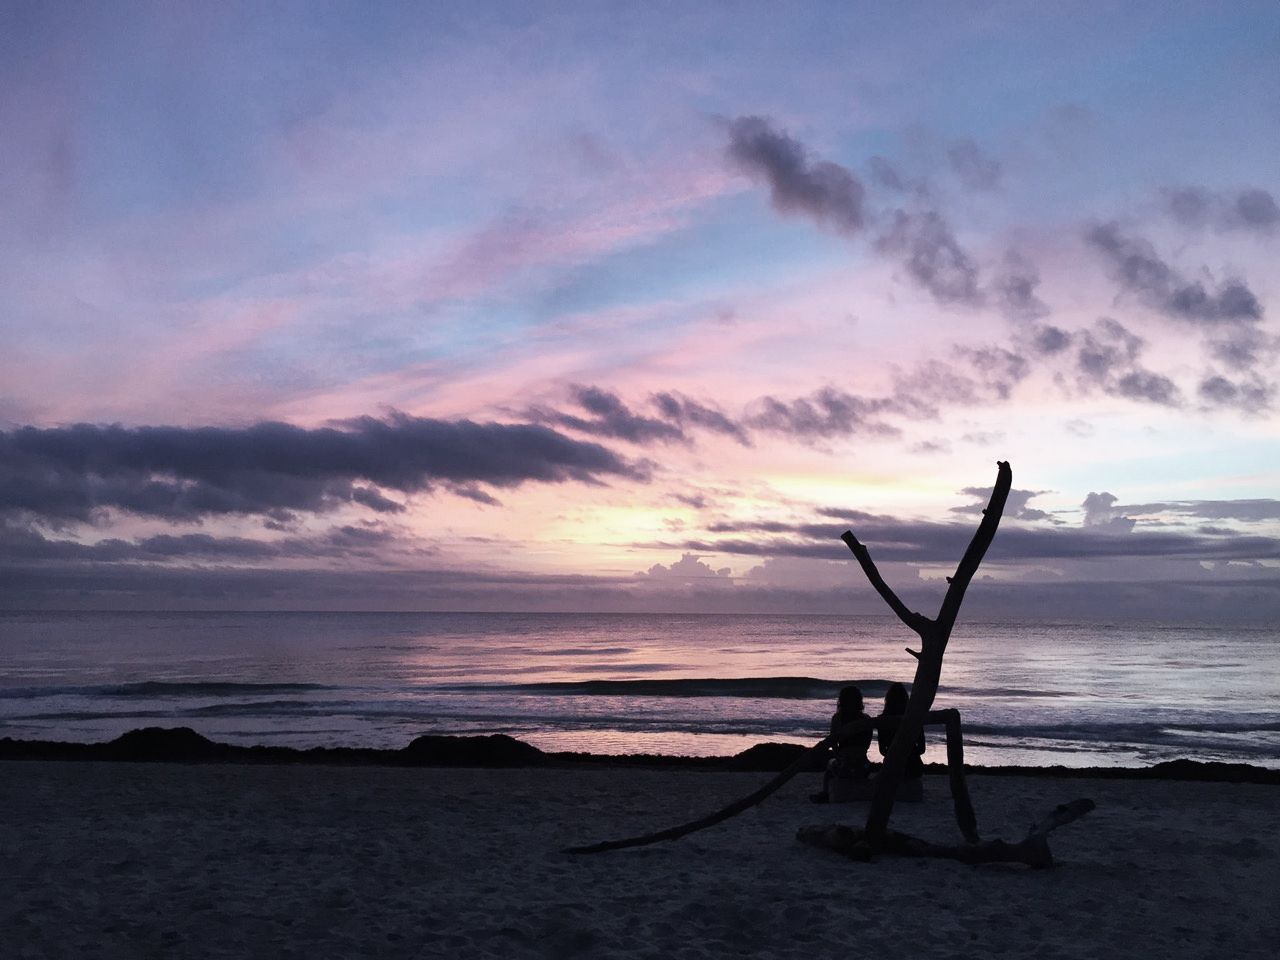 Tulum, Mexico, as my business partner, Lauren Lee, and I meditated together during a gorgeous sunrise. Lauren and I lead international retreats together and it fulfills my wildest dreams and deepest purpose.